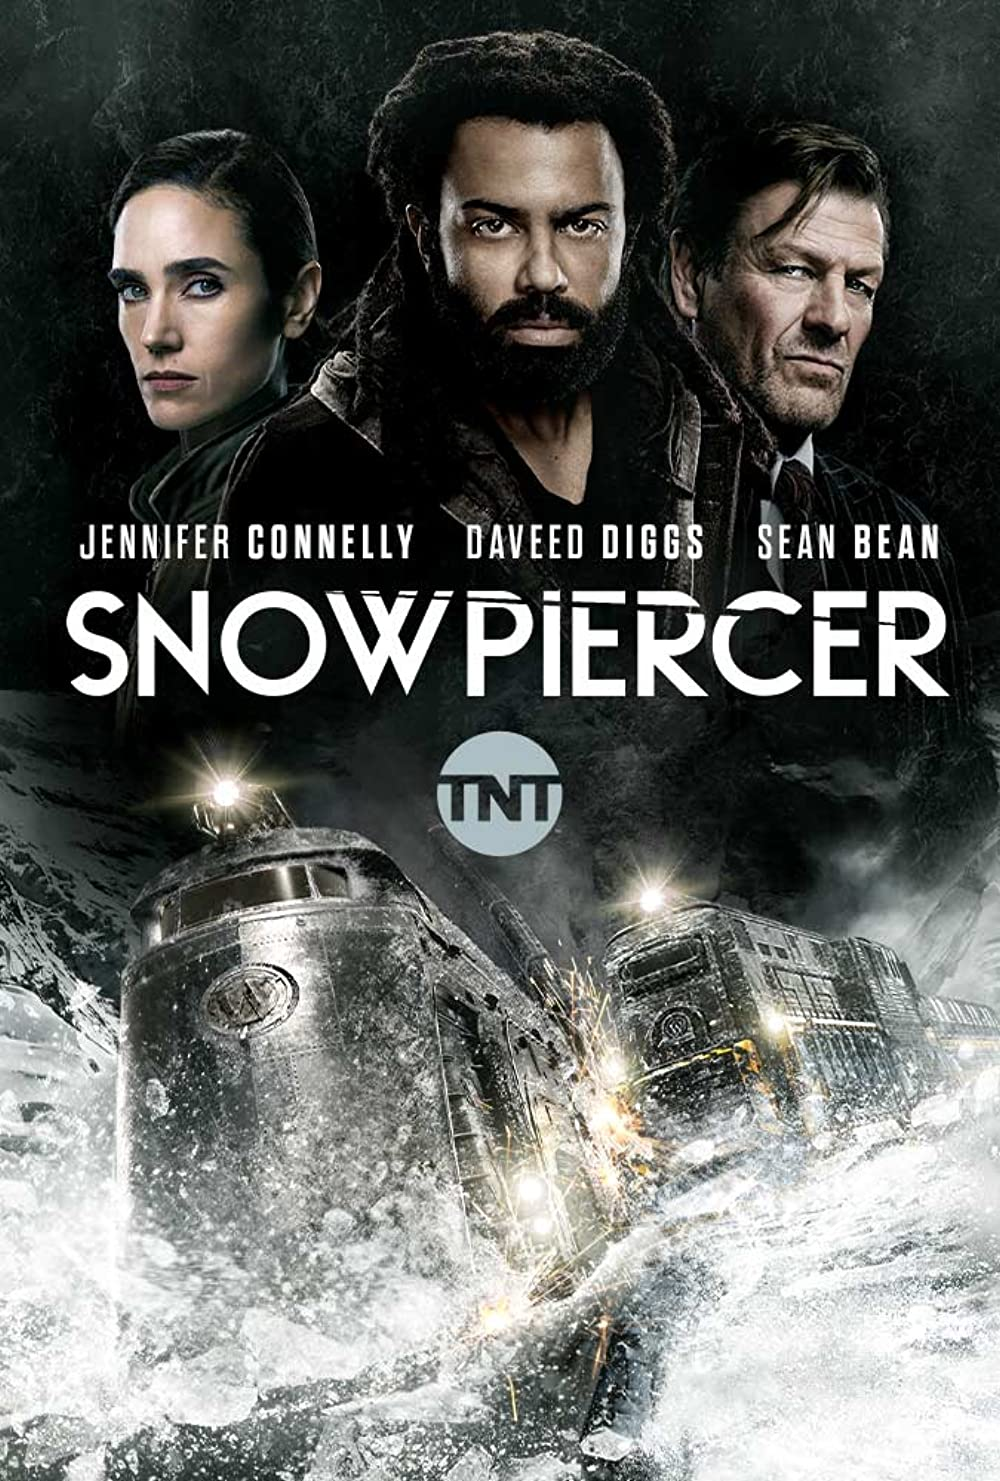 Snowpiercer S02EP01 2021 Hindi Dual Audio NF Series 720p HDRip 333MB ESub Download